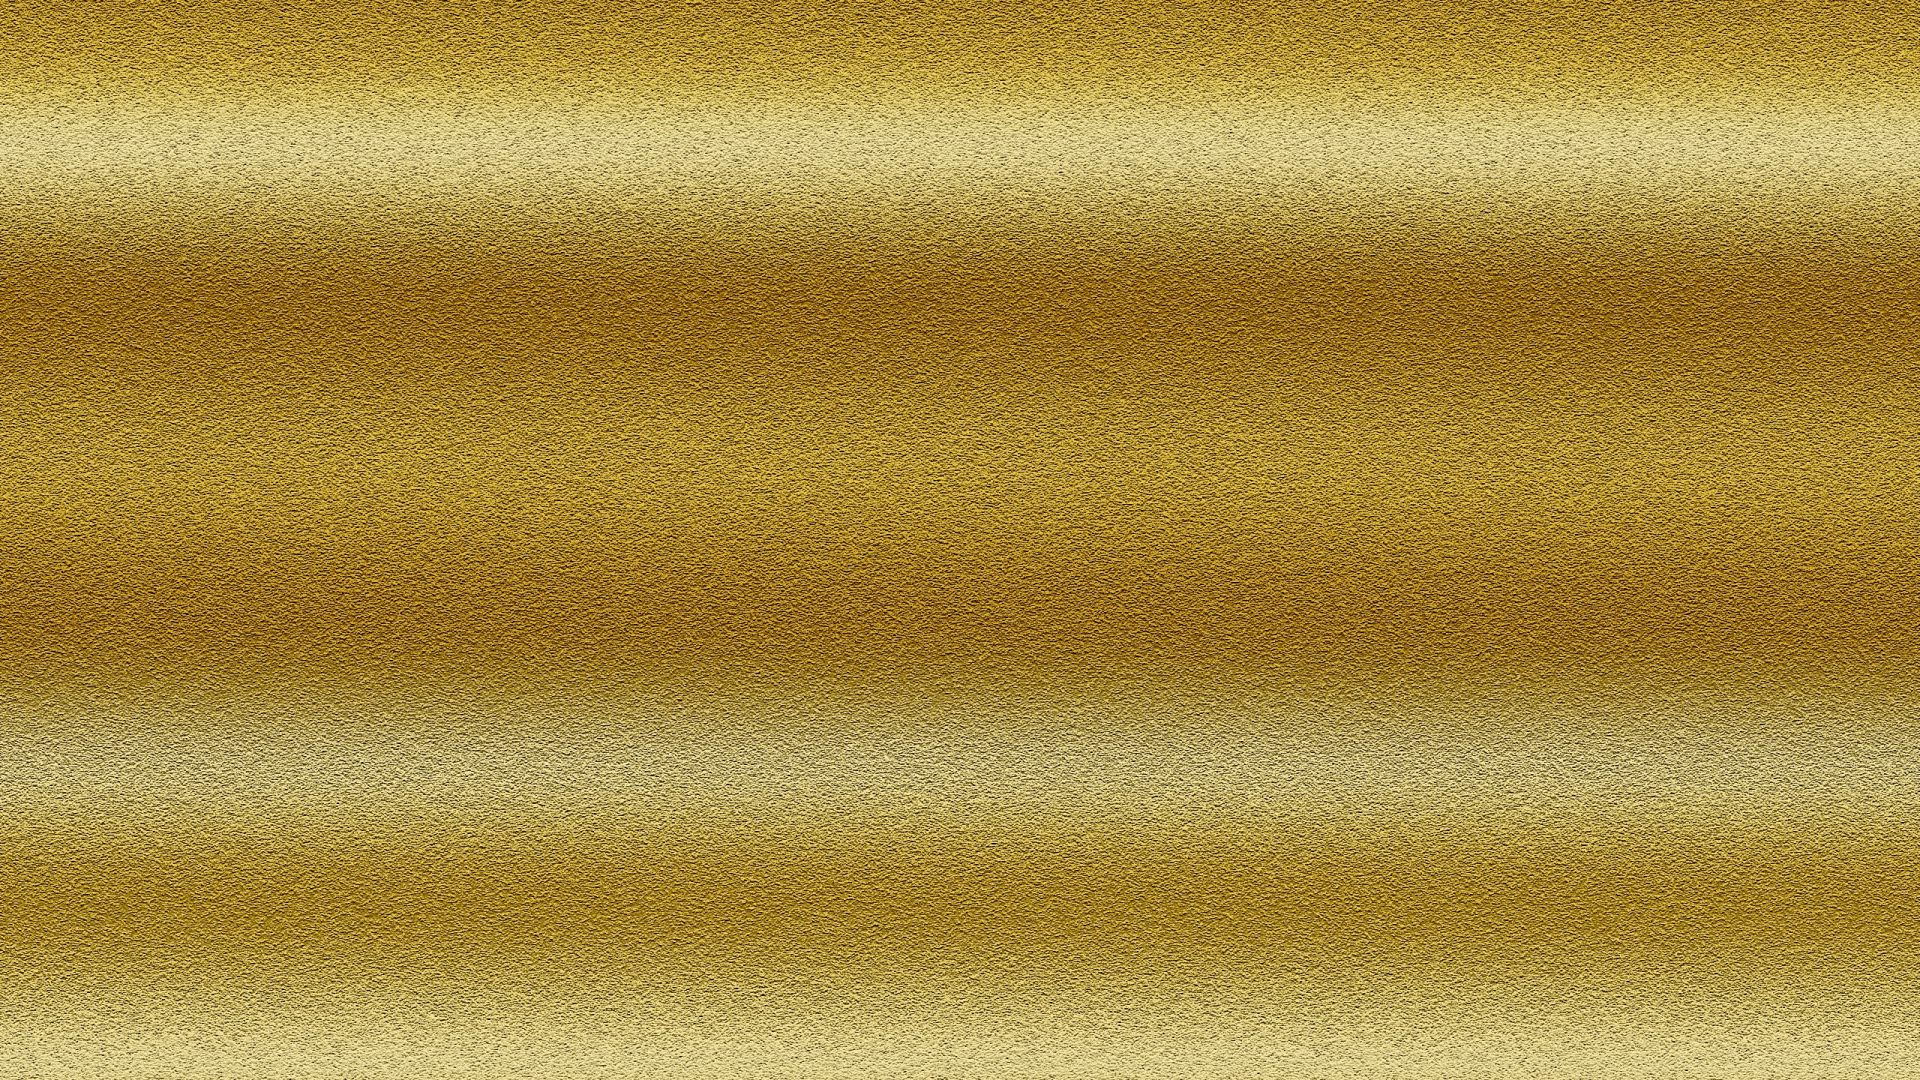 HD Gold Wave Backgrounds